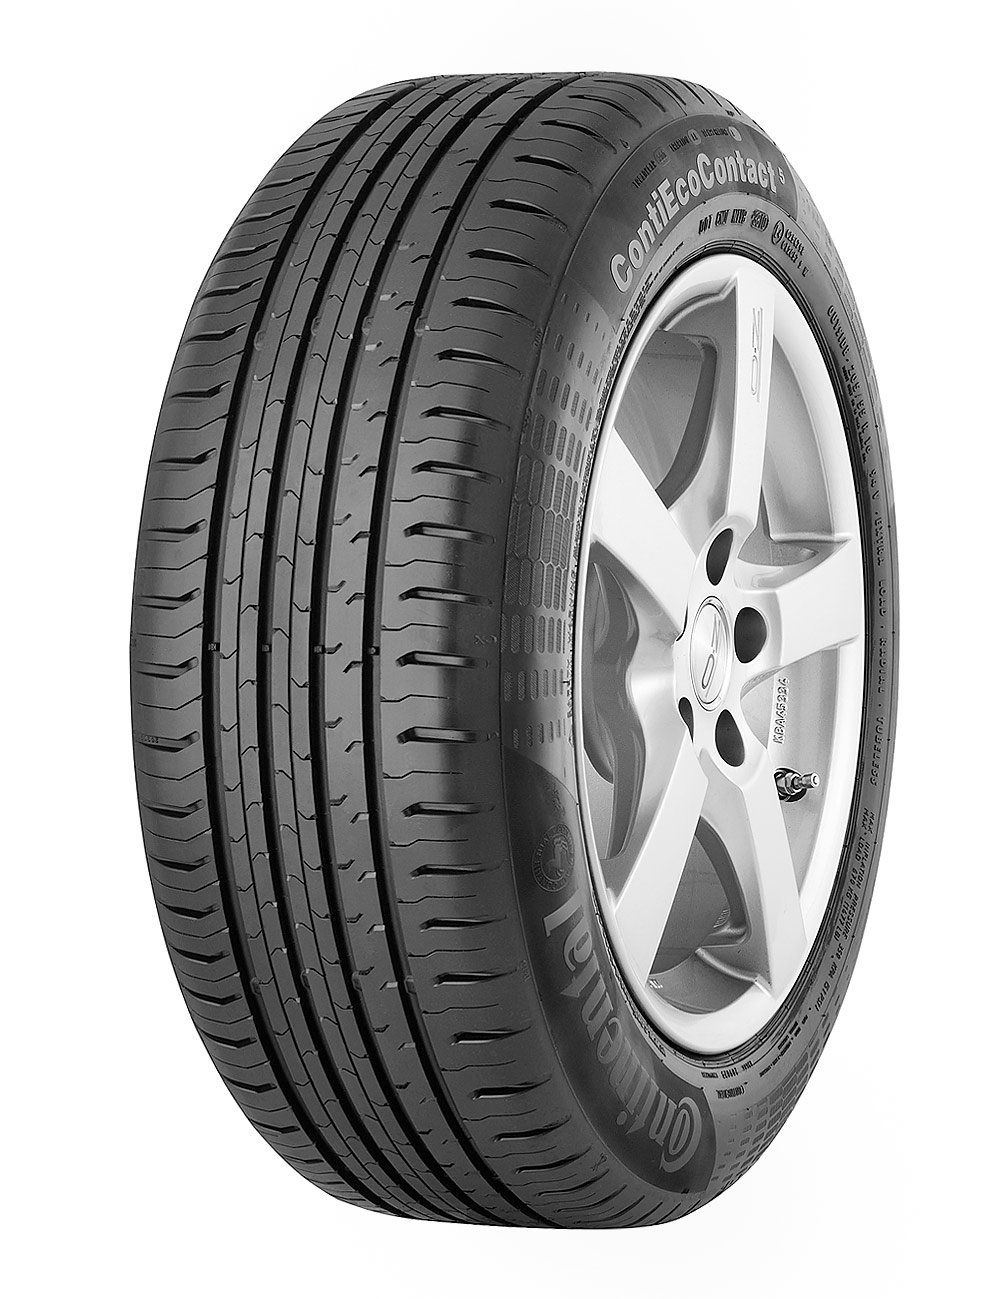 Anvelopa vara CONTINENTAL ECO CONTACT 5 195/65 R15 95H